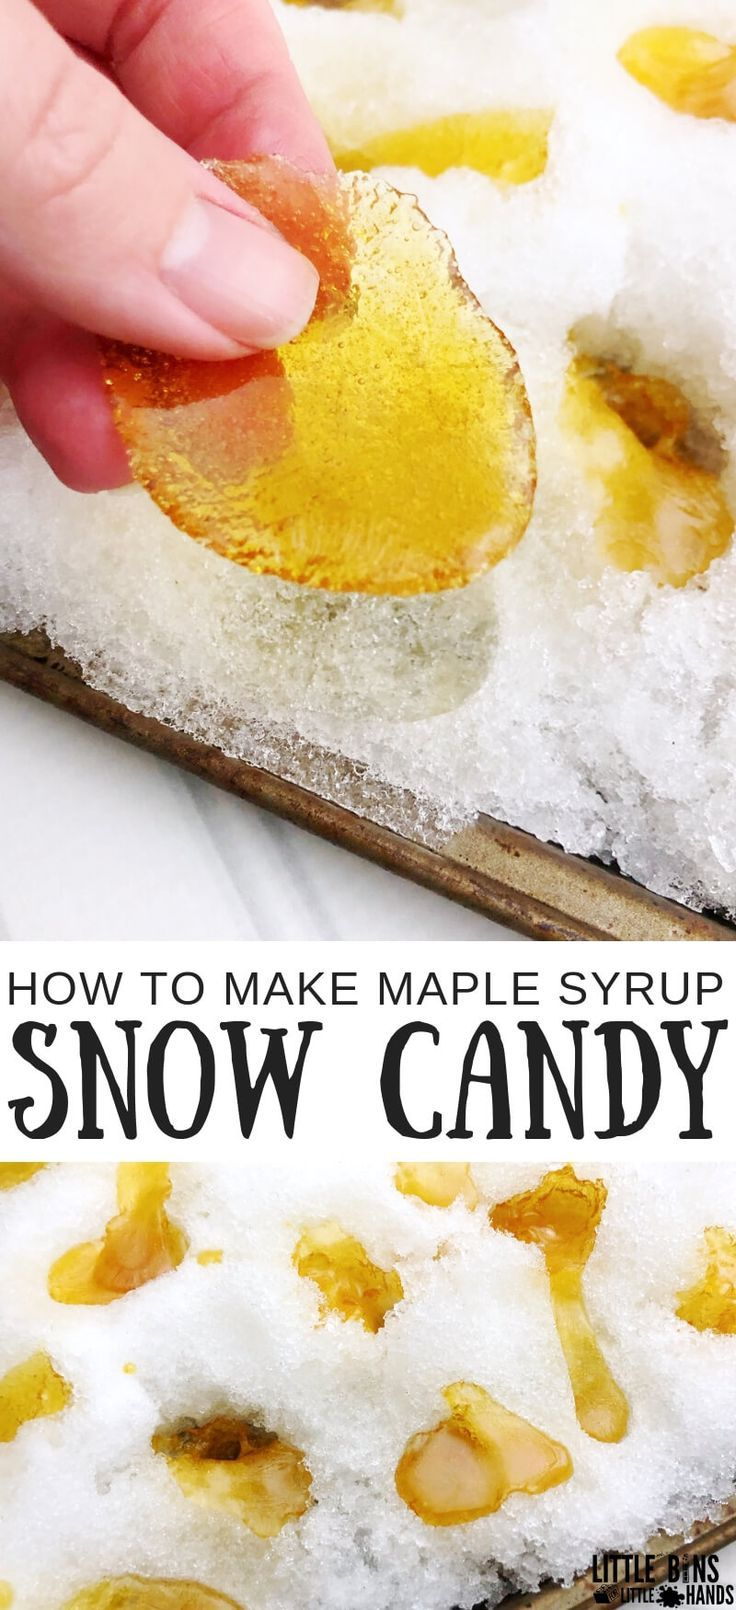 How To Make Maple Syrup Snow Candy #snowdayactivitiesforkids